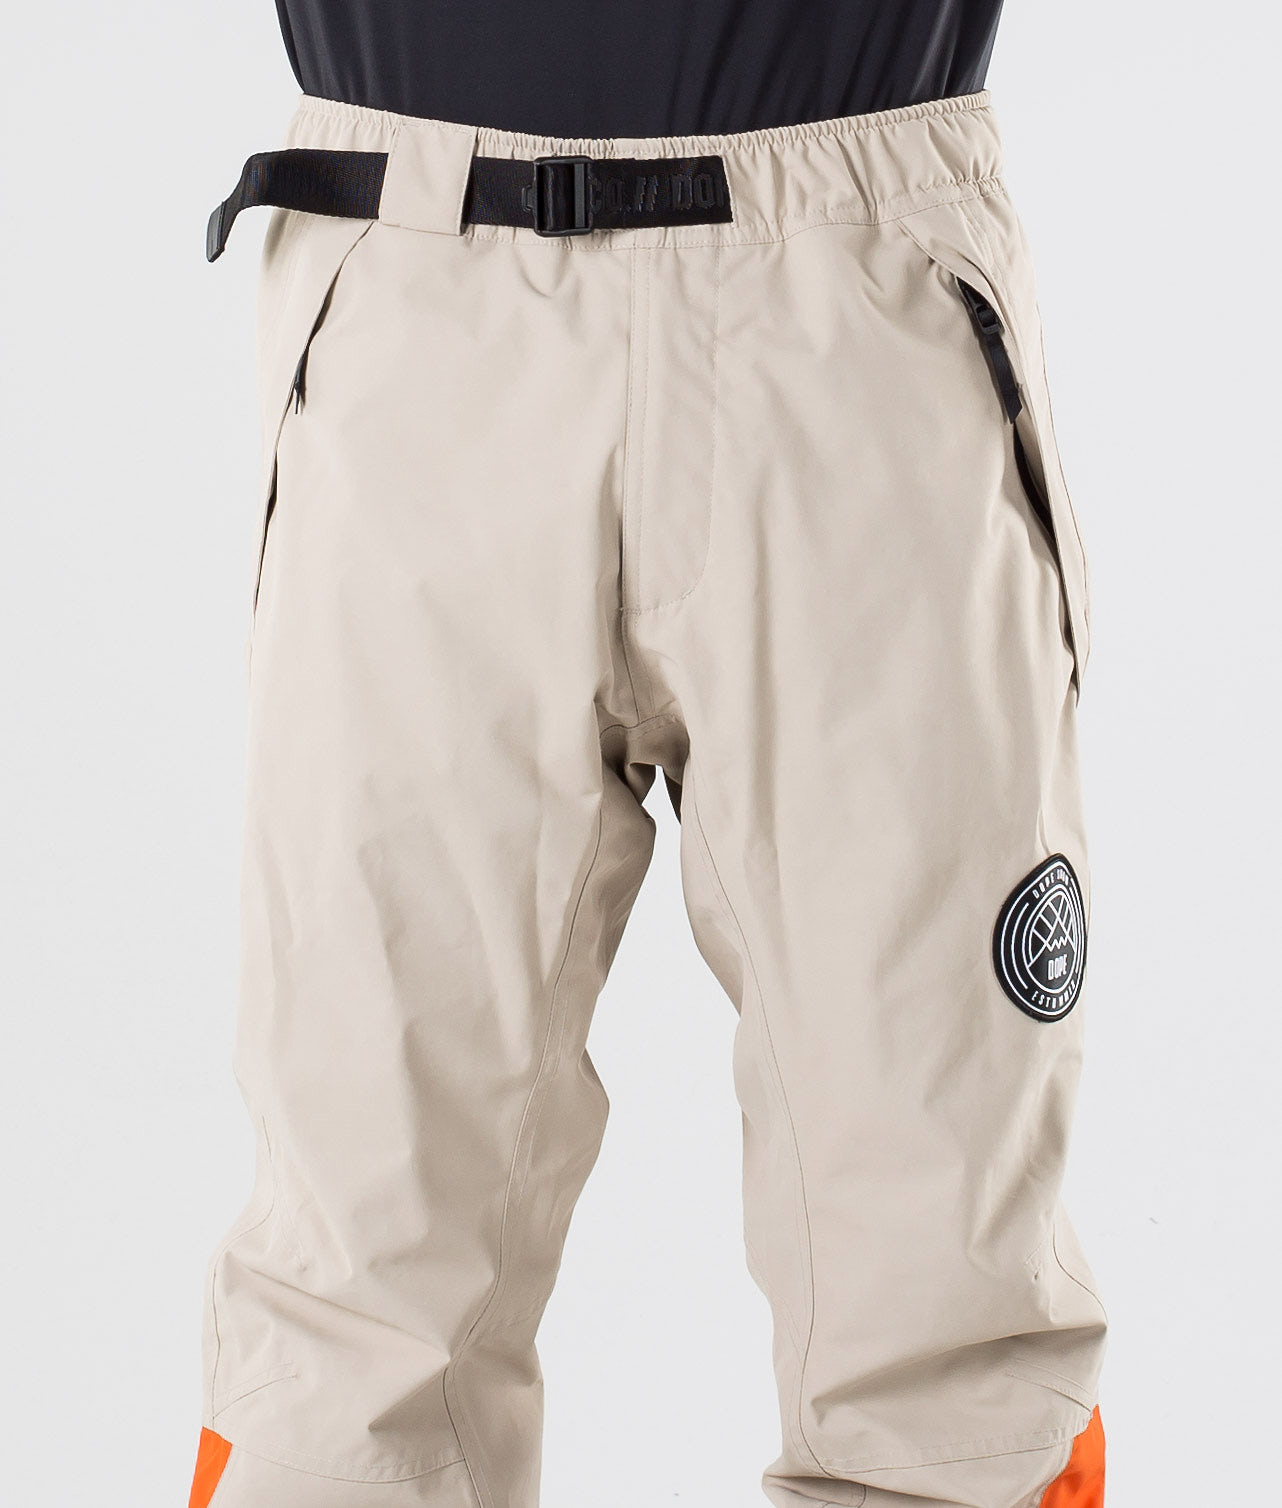 Buy Blizzard LE Snow Pants from Dope at Ridestore.com - Always free shipping, free returns and 30 days money back guarantee